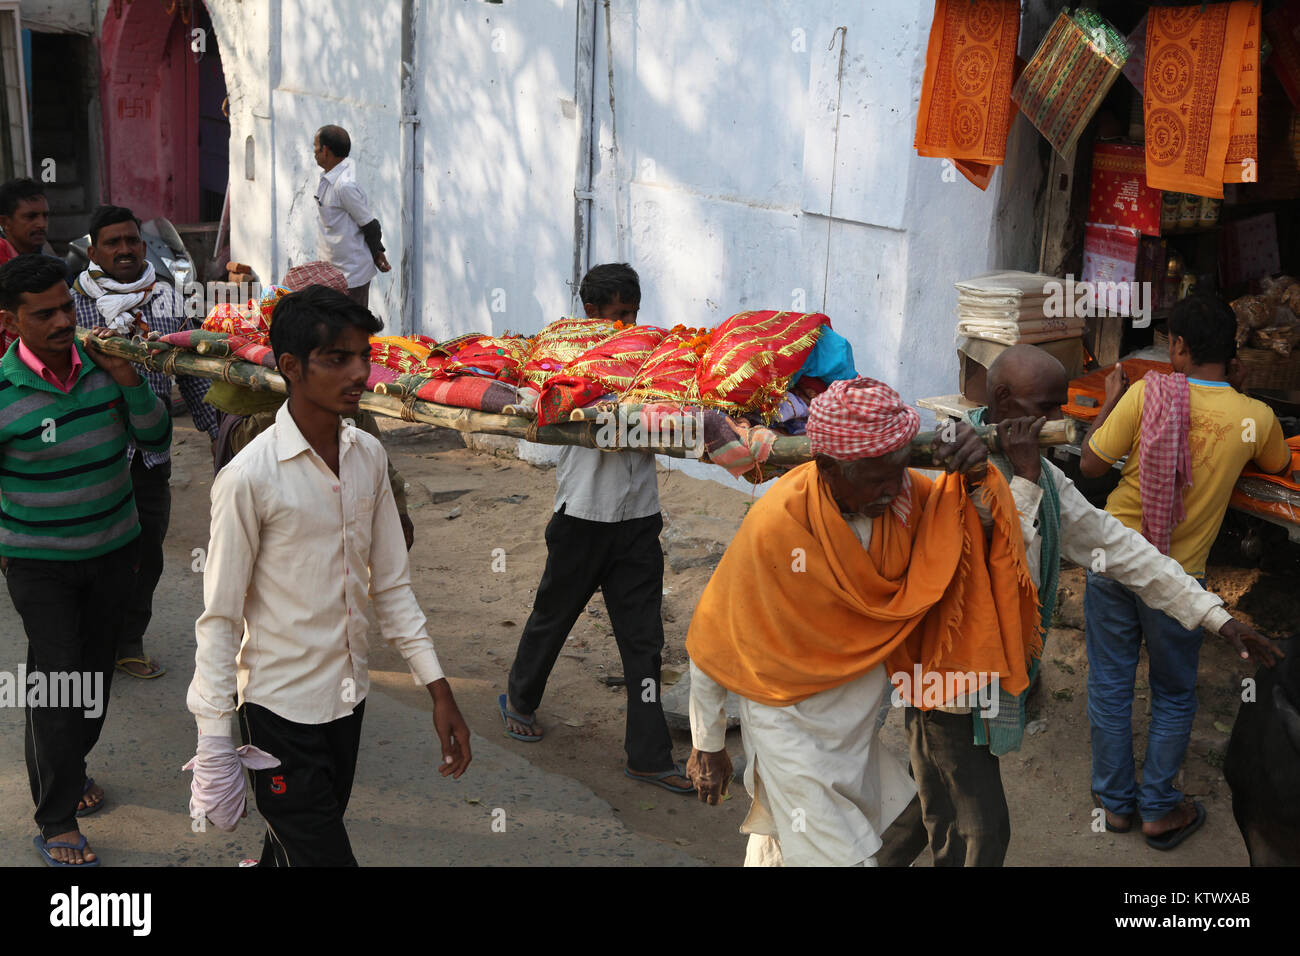 The shrouded body of a deceased man is carried on a stretcher through the streets of Gaya to the cremation site - Stock Image